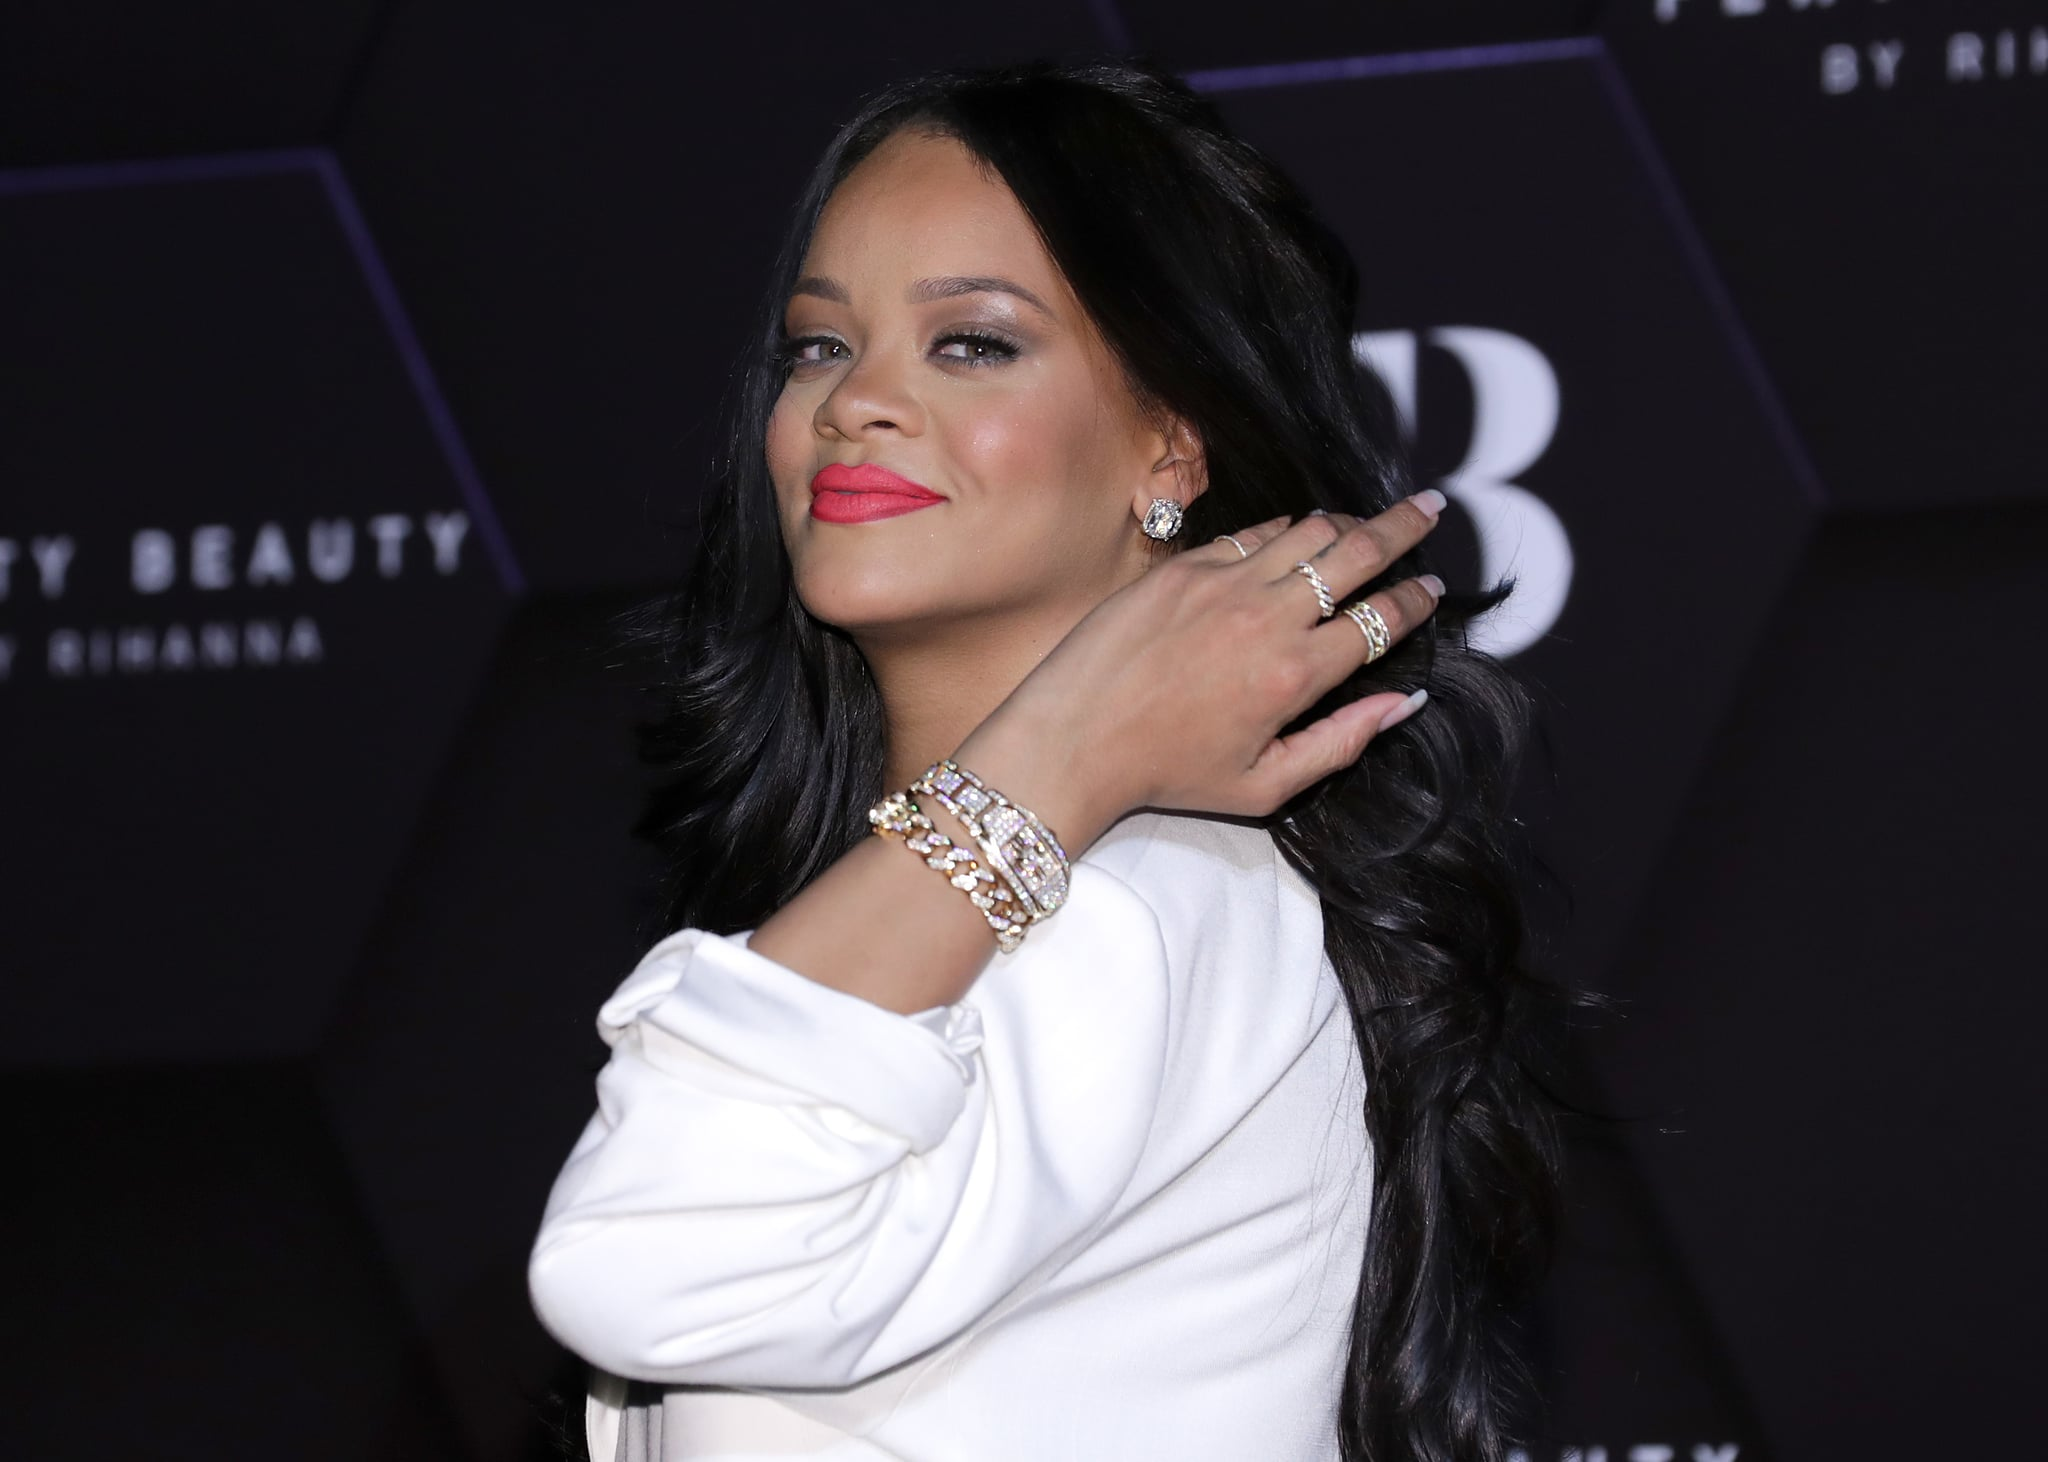 SEOUL, SOUTH KOREA - SEPTEMBER 17: ***South Korea Out*** Rihanna attends an event for 'FENTY BEAUTY' artistry beauty talk with Rihanna at Lotte World Tower on September 17, 2019 in Seoul, South Korea. (Photo by Han Myung-Gu/WireImage)